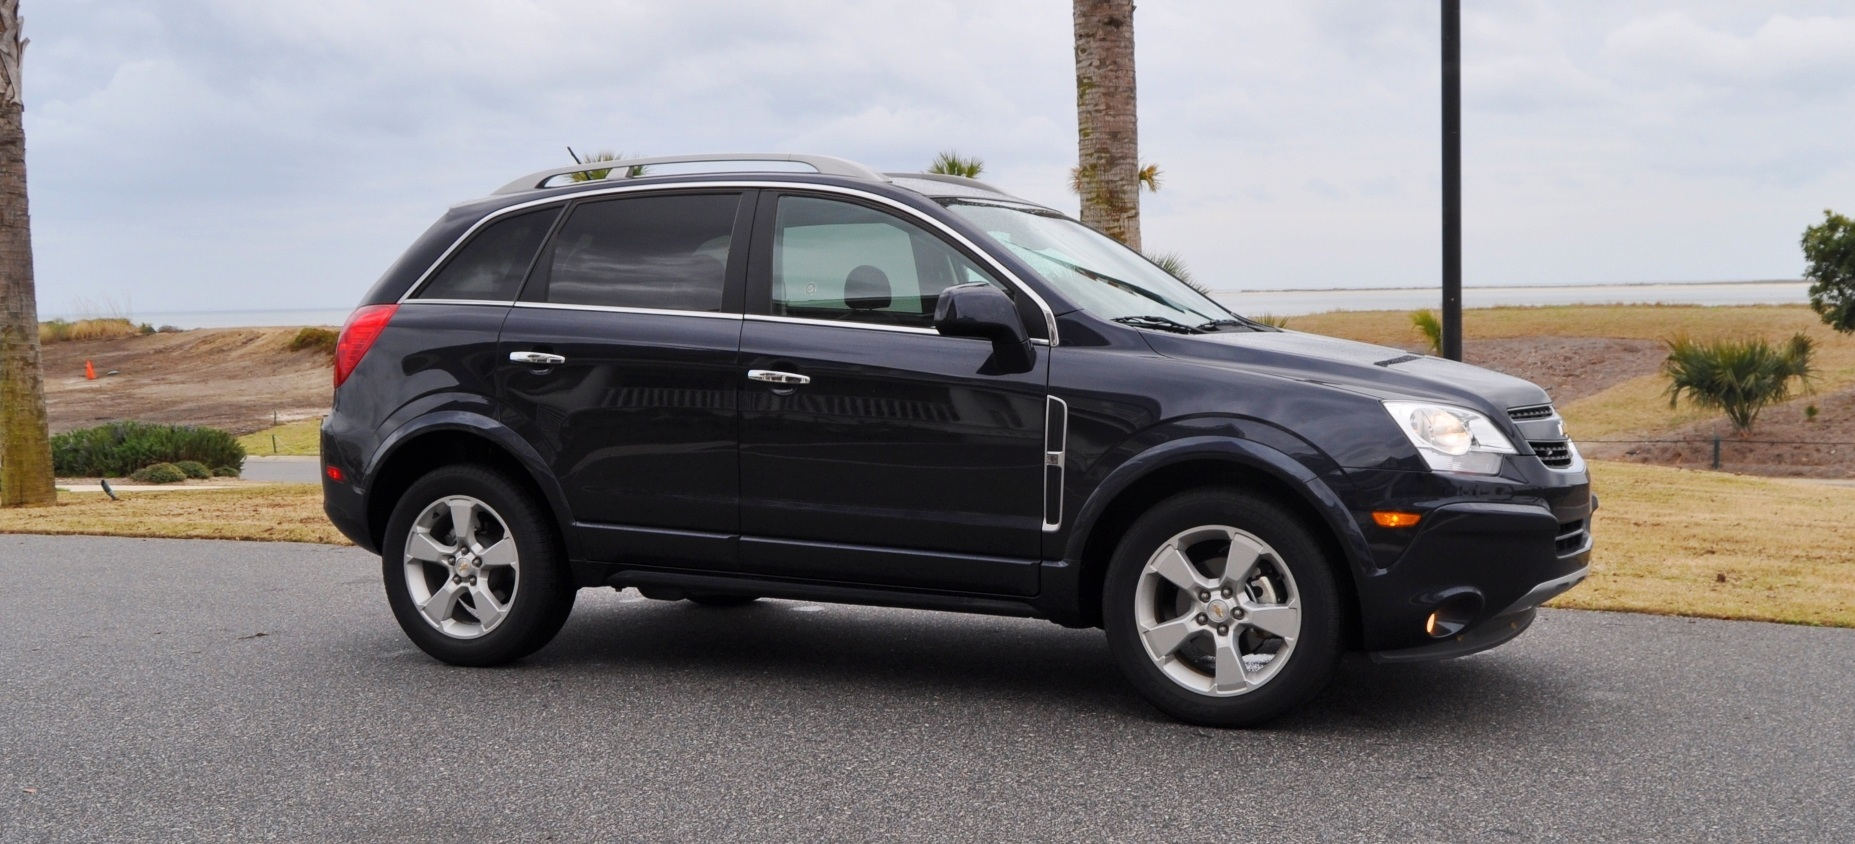 2014 chevrolet captiva sport side 2014 chevrolet captiva sport release. Cars Review. Best American Auto & Cars Review